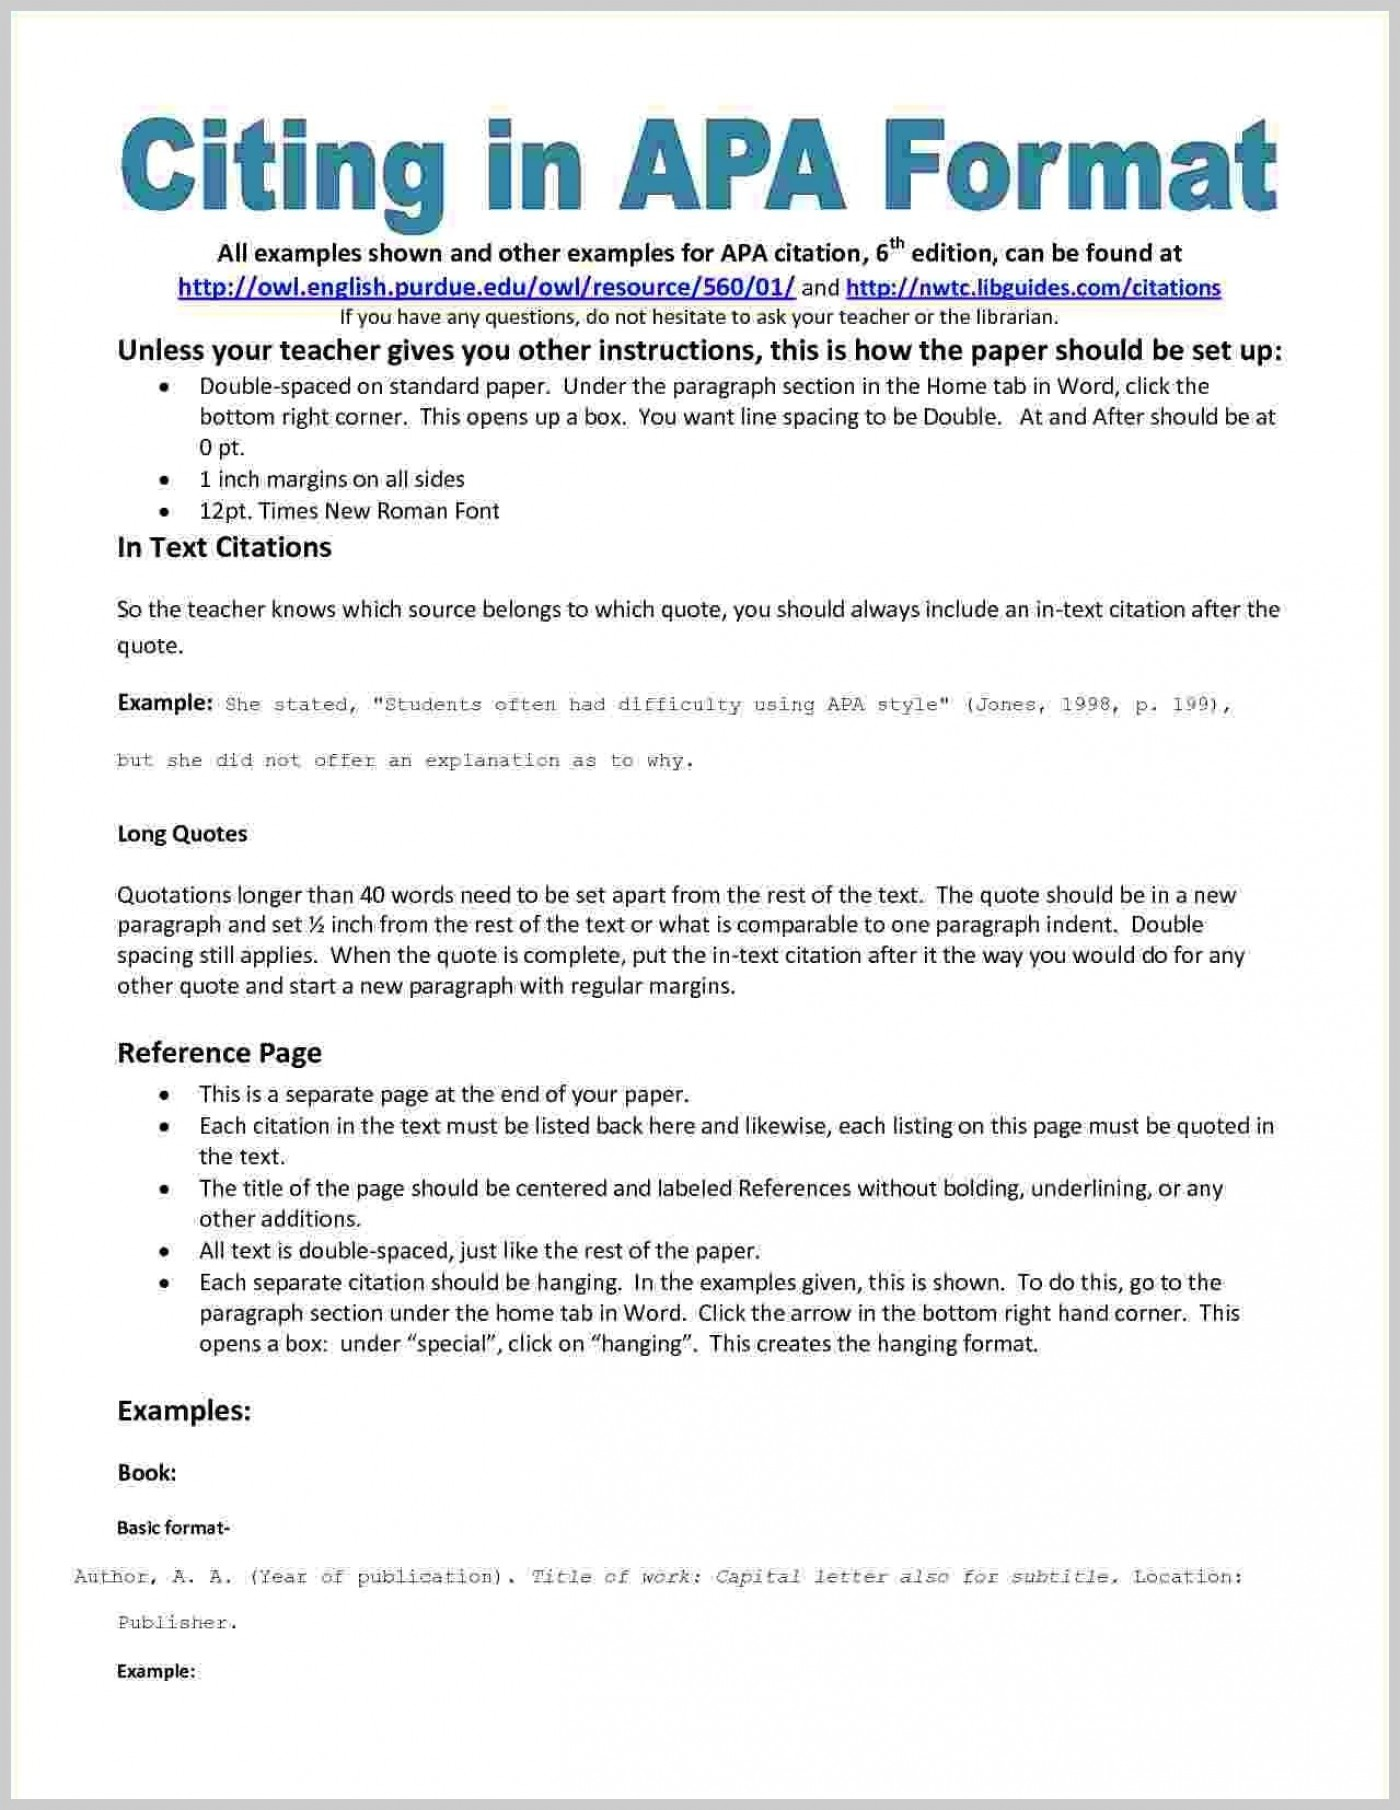 002 Database Security Recent Research Papers Apa Style Paper Reference In Text Citation Mla Examples Toreto Co Dreaded Pdf 1400